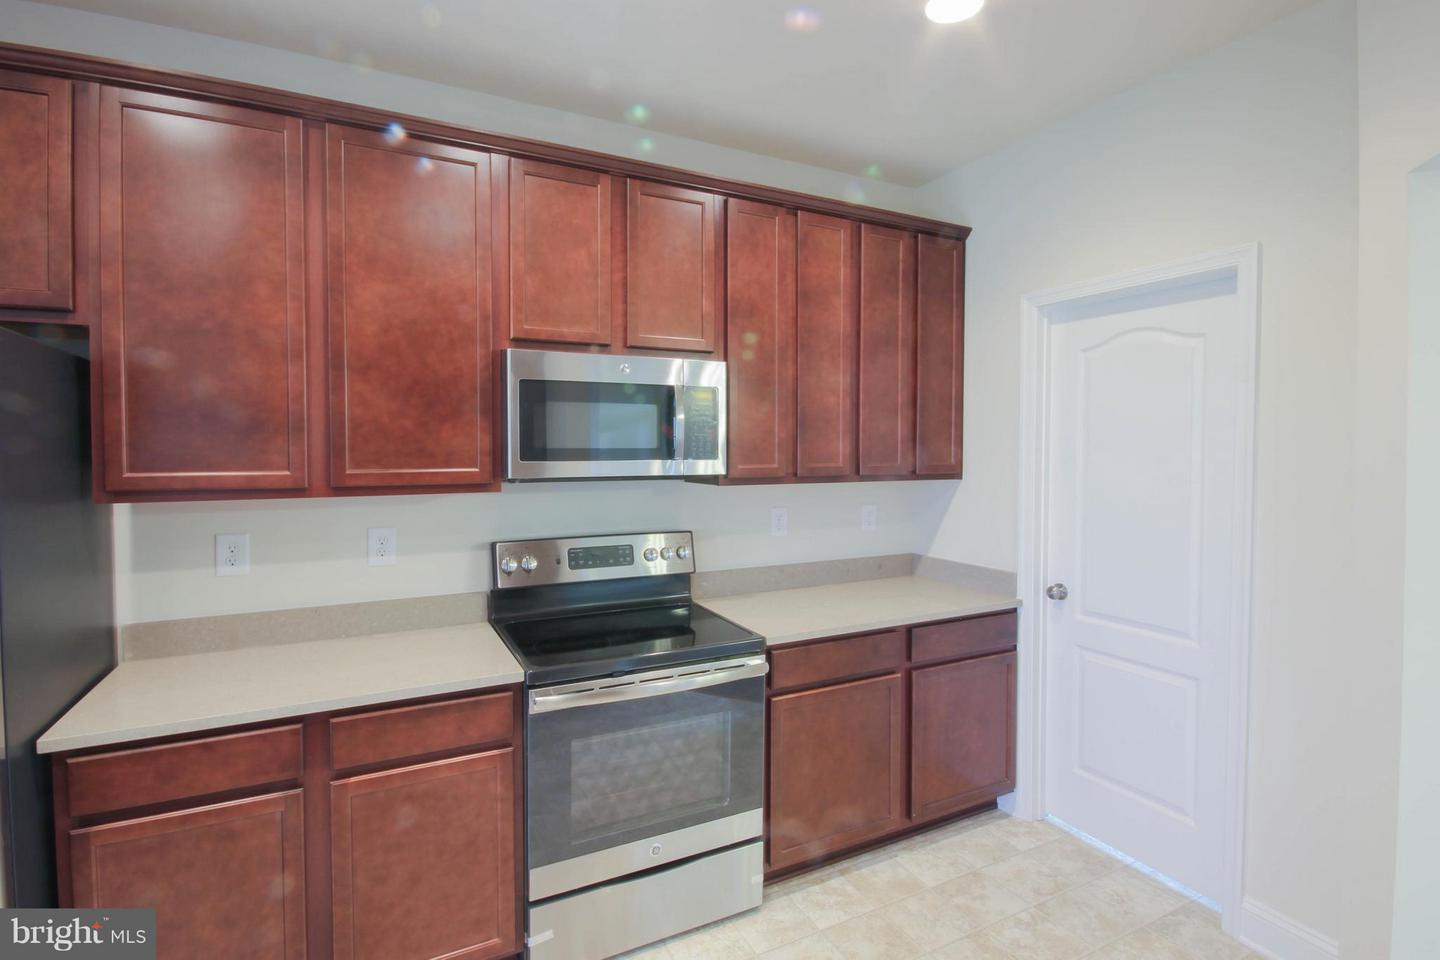 112 Dorchester, Falling Waters, WV, 25419